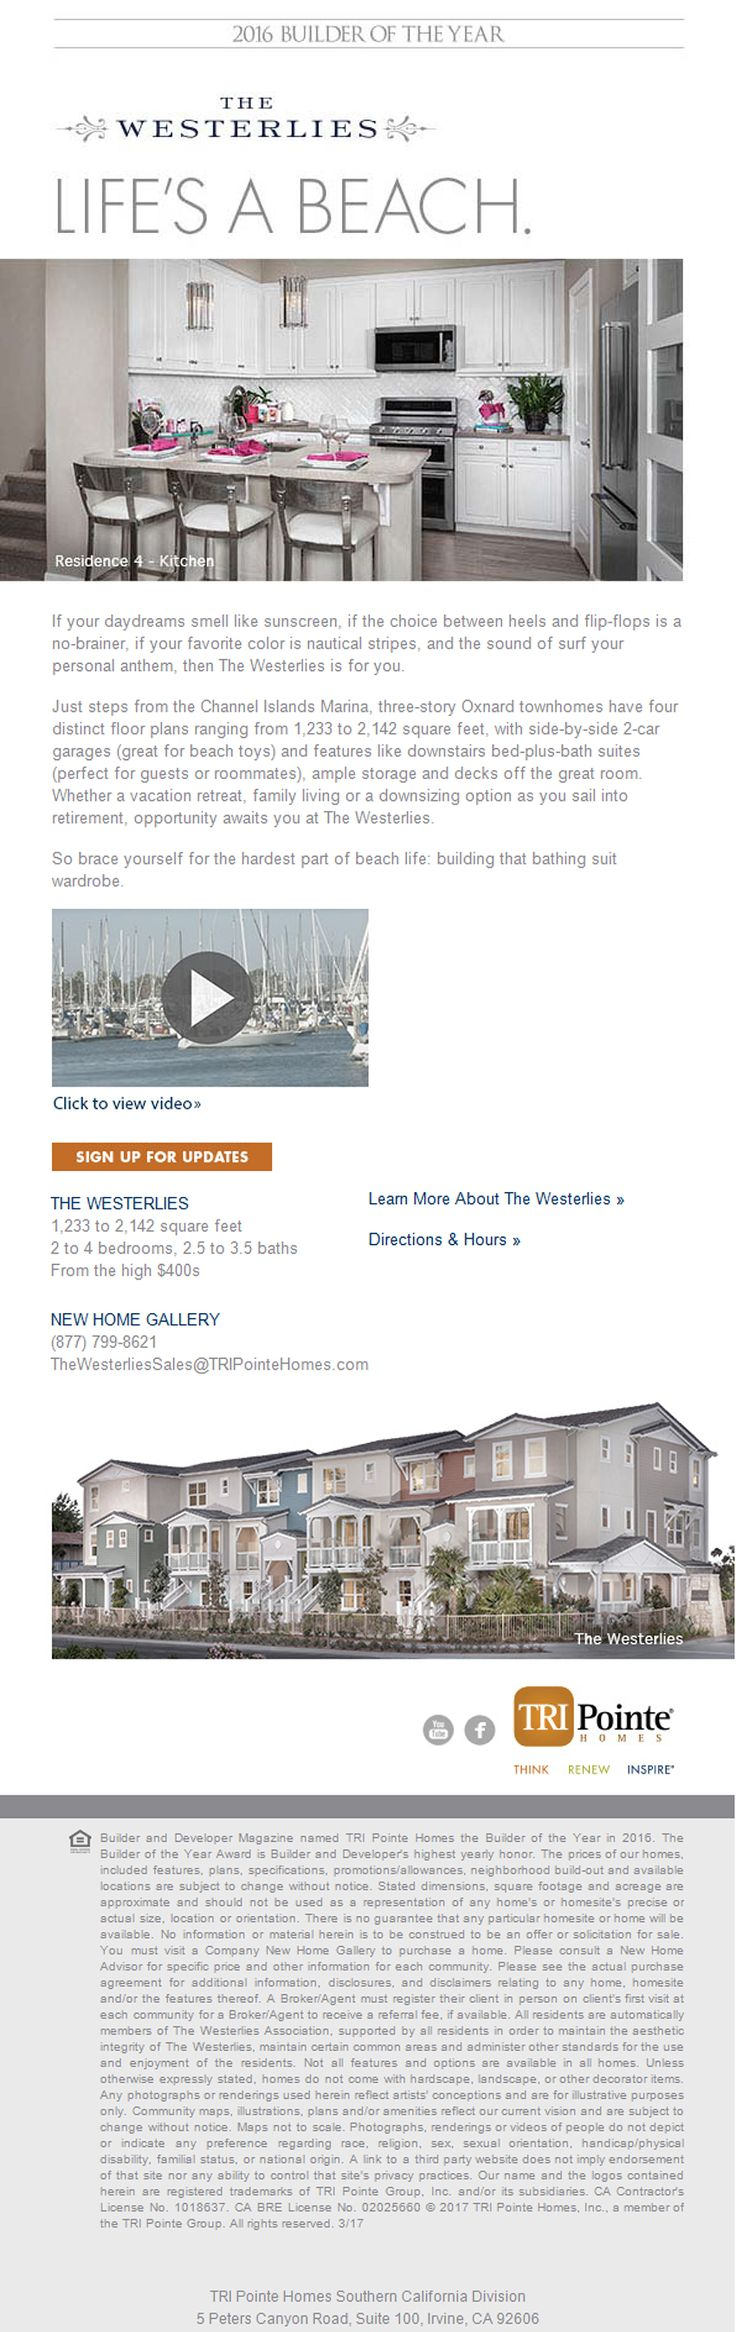 New Homes for Sale in Oxnard, California  New Homes at The Westerlies, Break Out Your Flip Flops  Just steps from the Channel Islands Marina |  Three-story Oxnard Townhomes  | Designed for Ease & Convenience, so you can soak up the best of beach live!  https://www.tripointehomes.com/southern-california/the-westerlies/